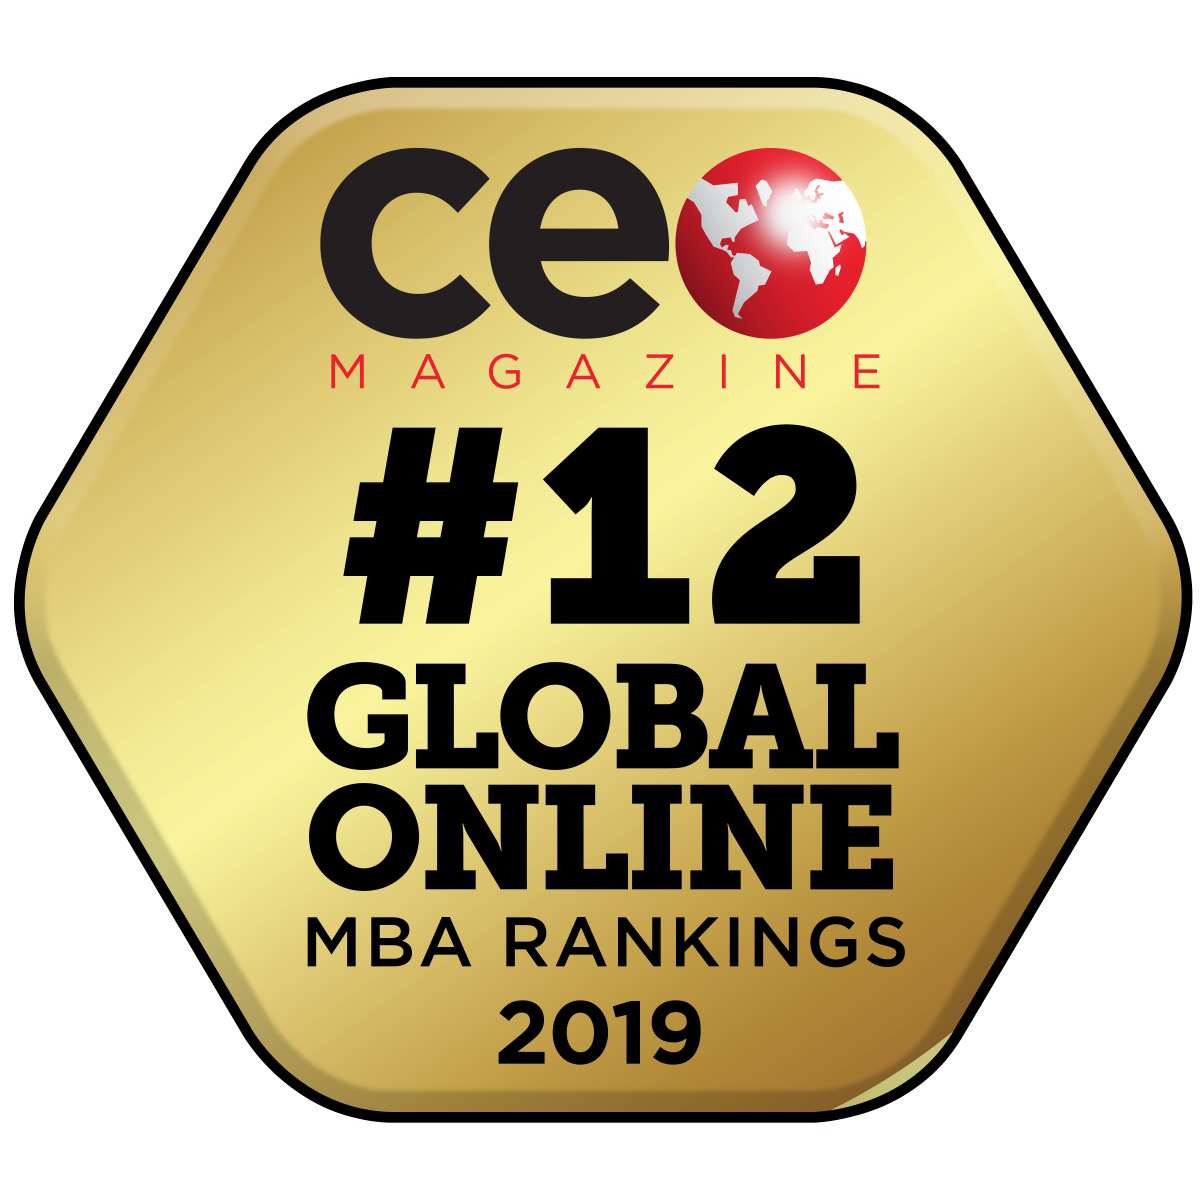 CEO Magazine global ranking logo